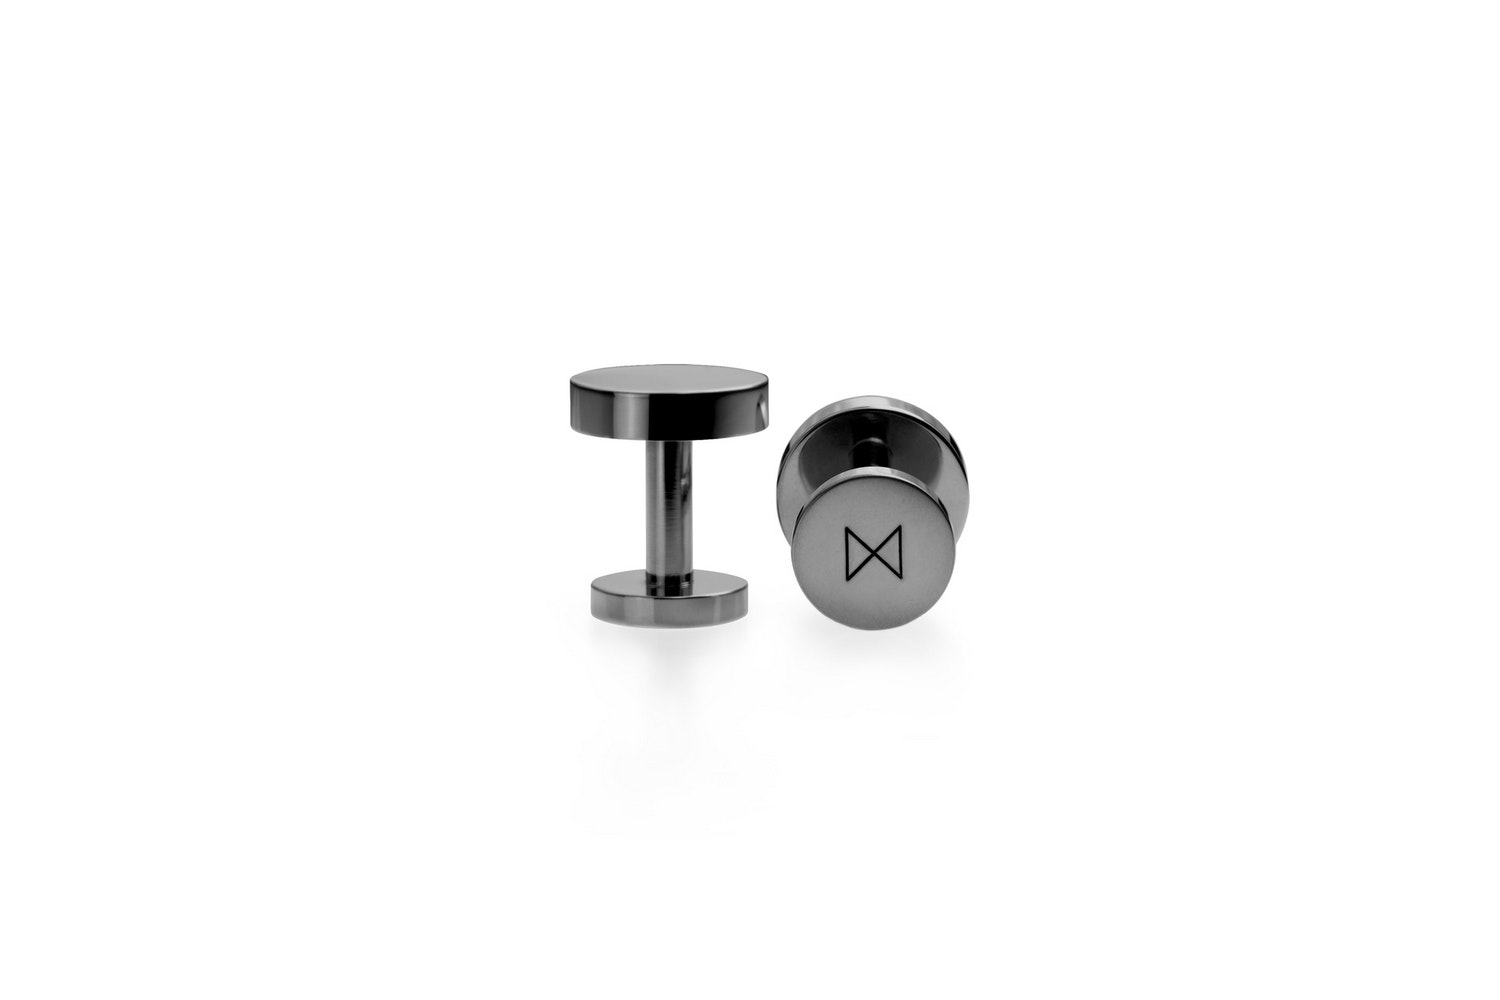 Cufflinks - Black Nickel Plated by Alice Made This for Minimalux